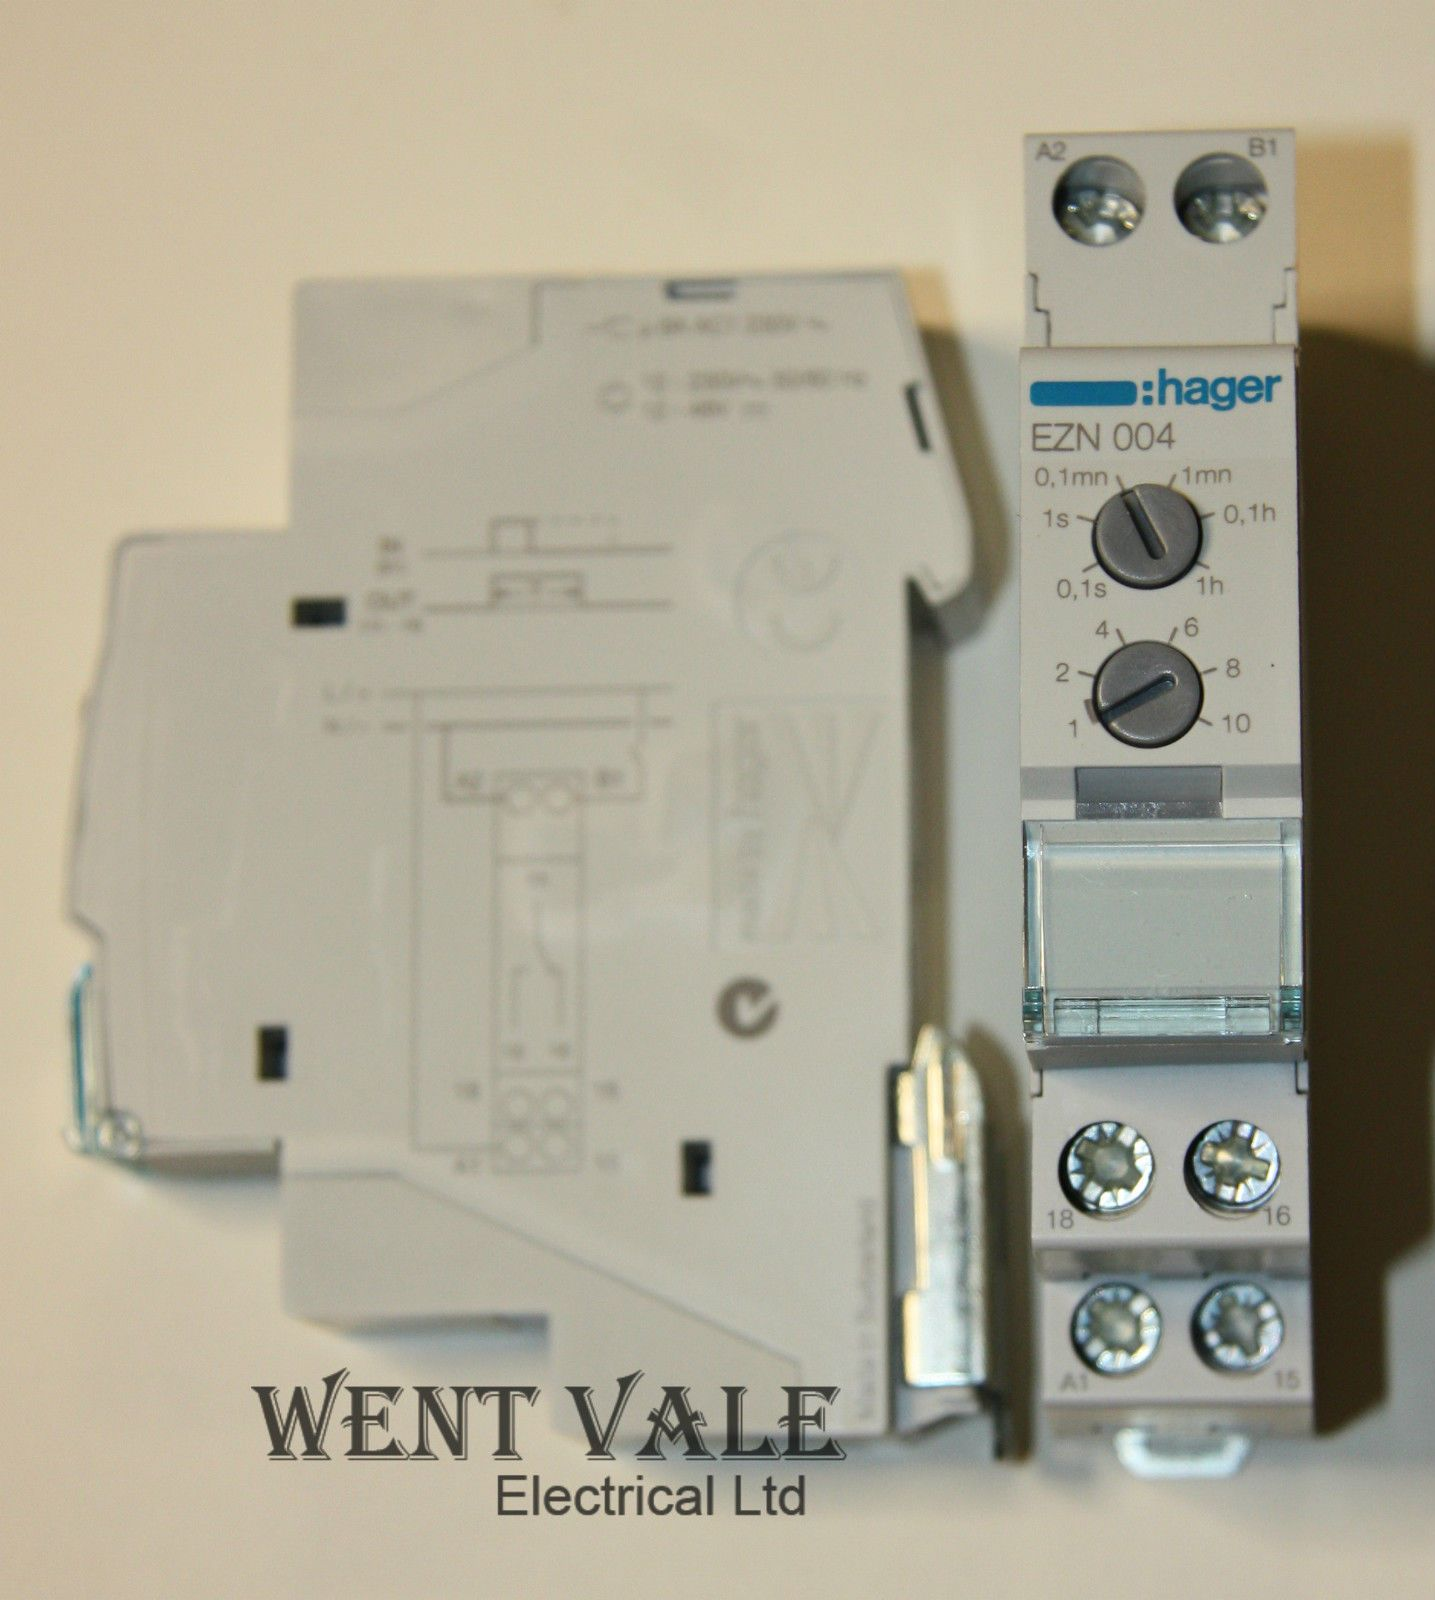 hager ezn004 delay timer relay new in box 11831 p hager fuse box timer hager wiring diagrams instruction changing a fuse in a hager fuse box at gsmportal.co